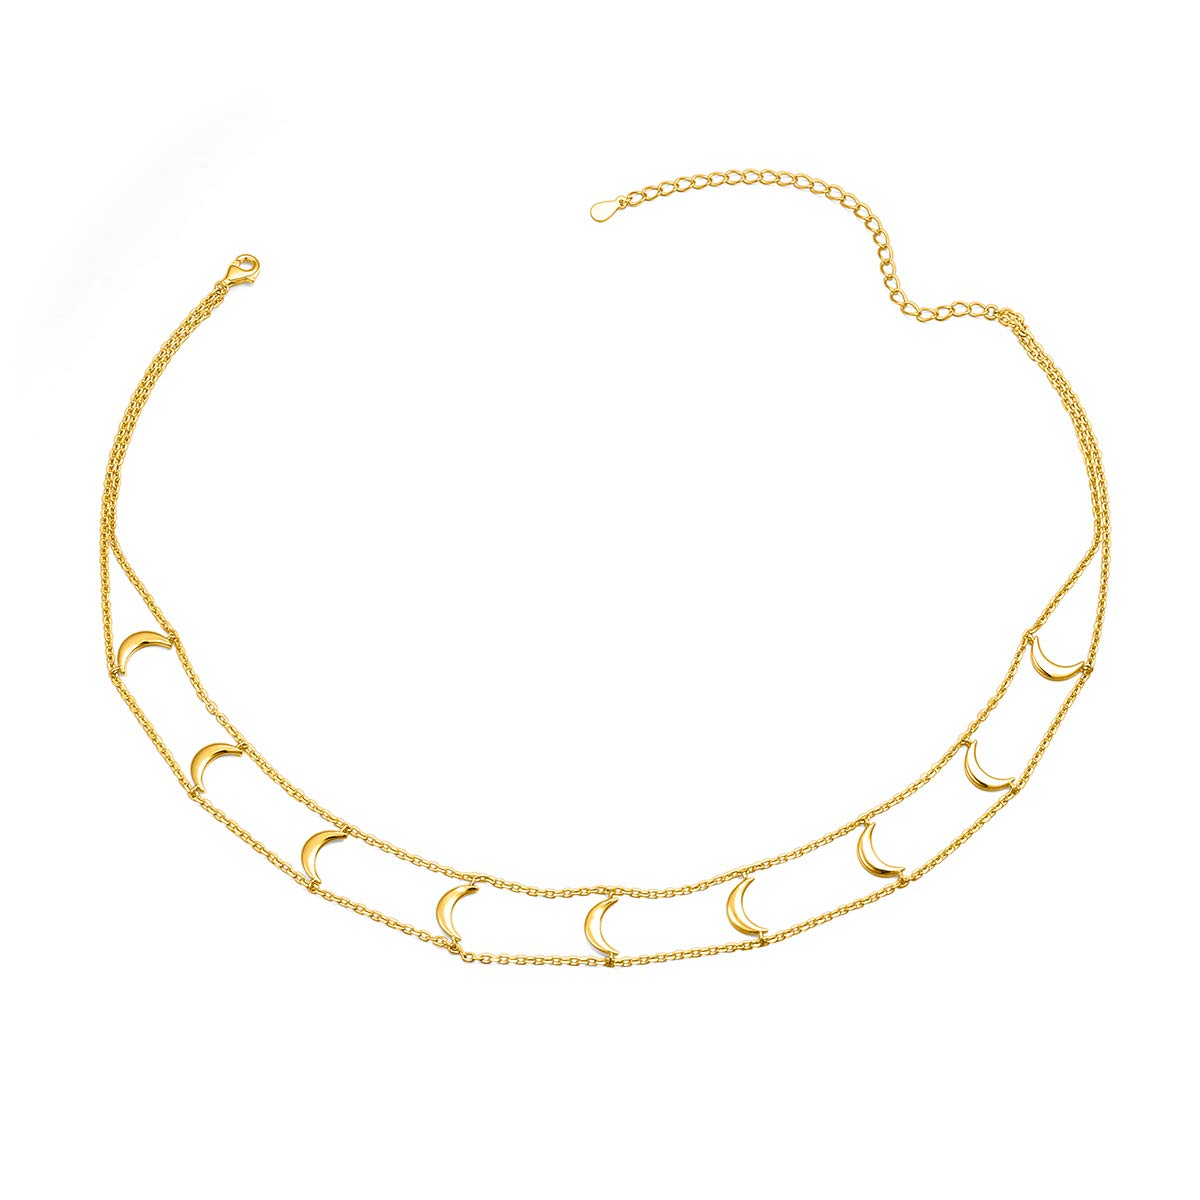 Short Necklace 925 Sterling Silver Double Layered Chain Crescent Moon Choker Necklace for Women Girls, 13'' + 3'' (Gold Plated)